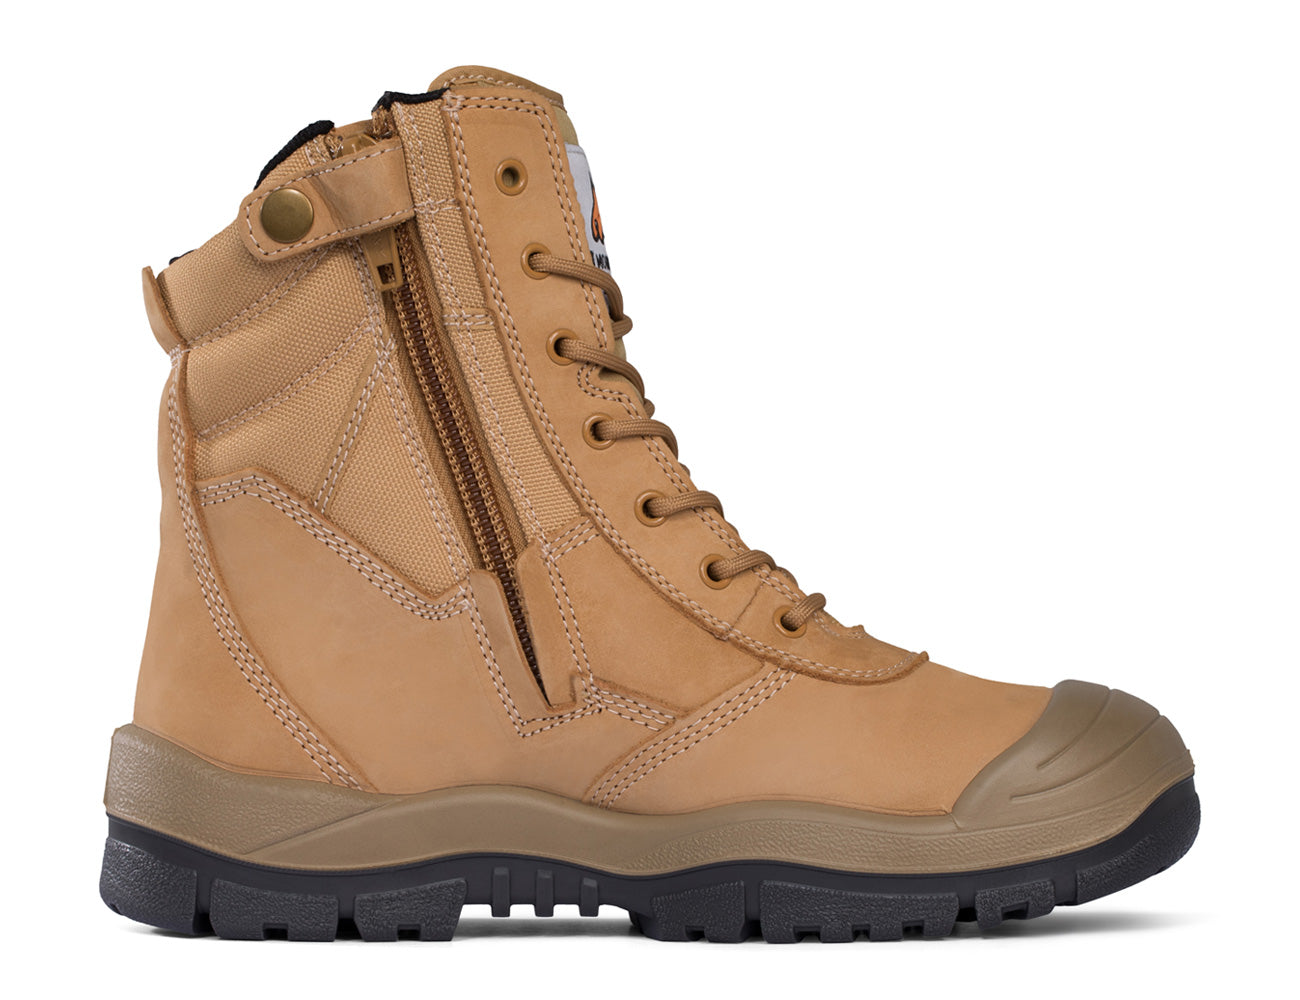 Mongrel High Leg Zip-Sider Safety Boots with Scuff Cap - 451050